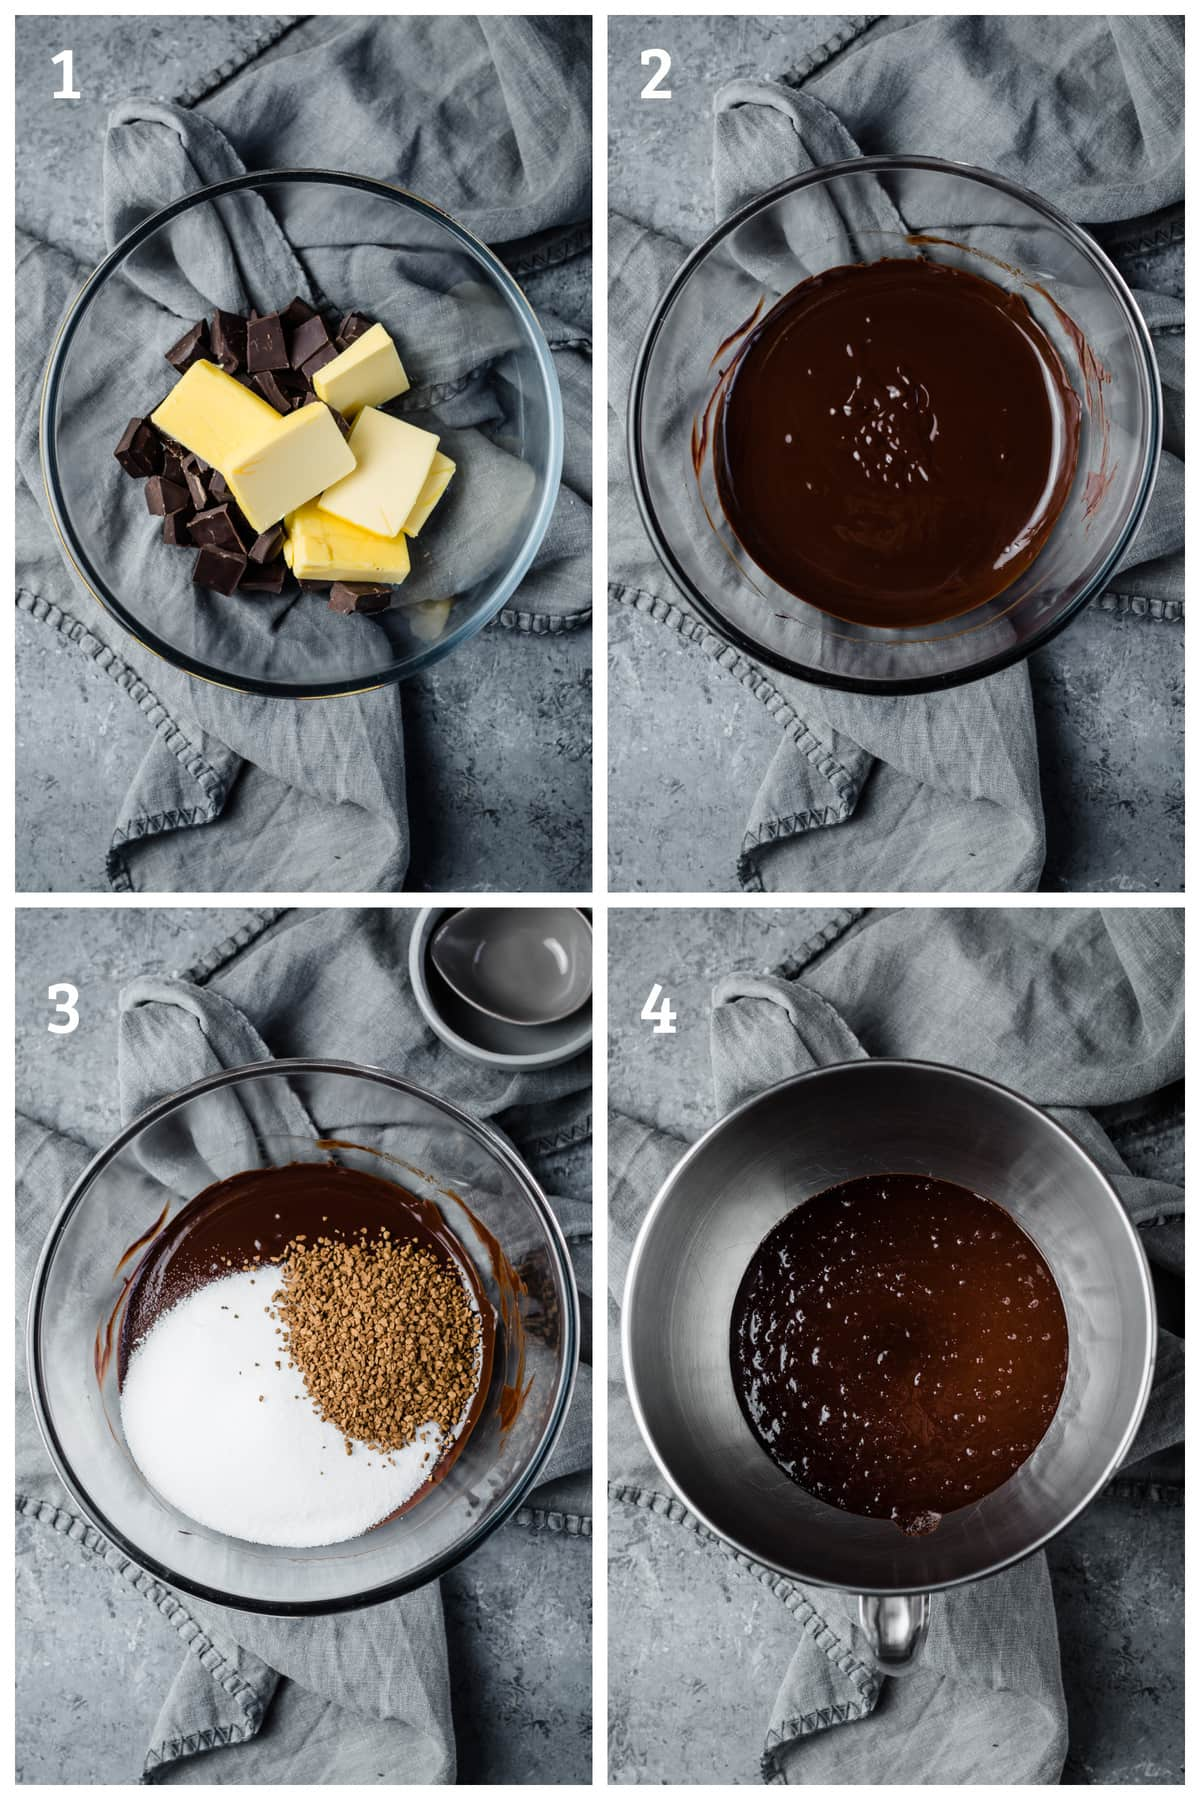 flourless cake batter being made and mixed in a mixing bowl - melted chocolate, butter, sweetener, vanilla